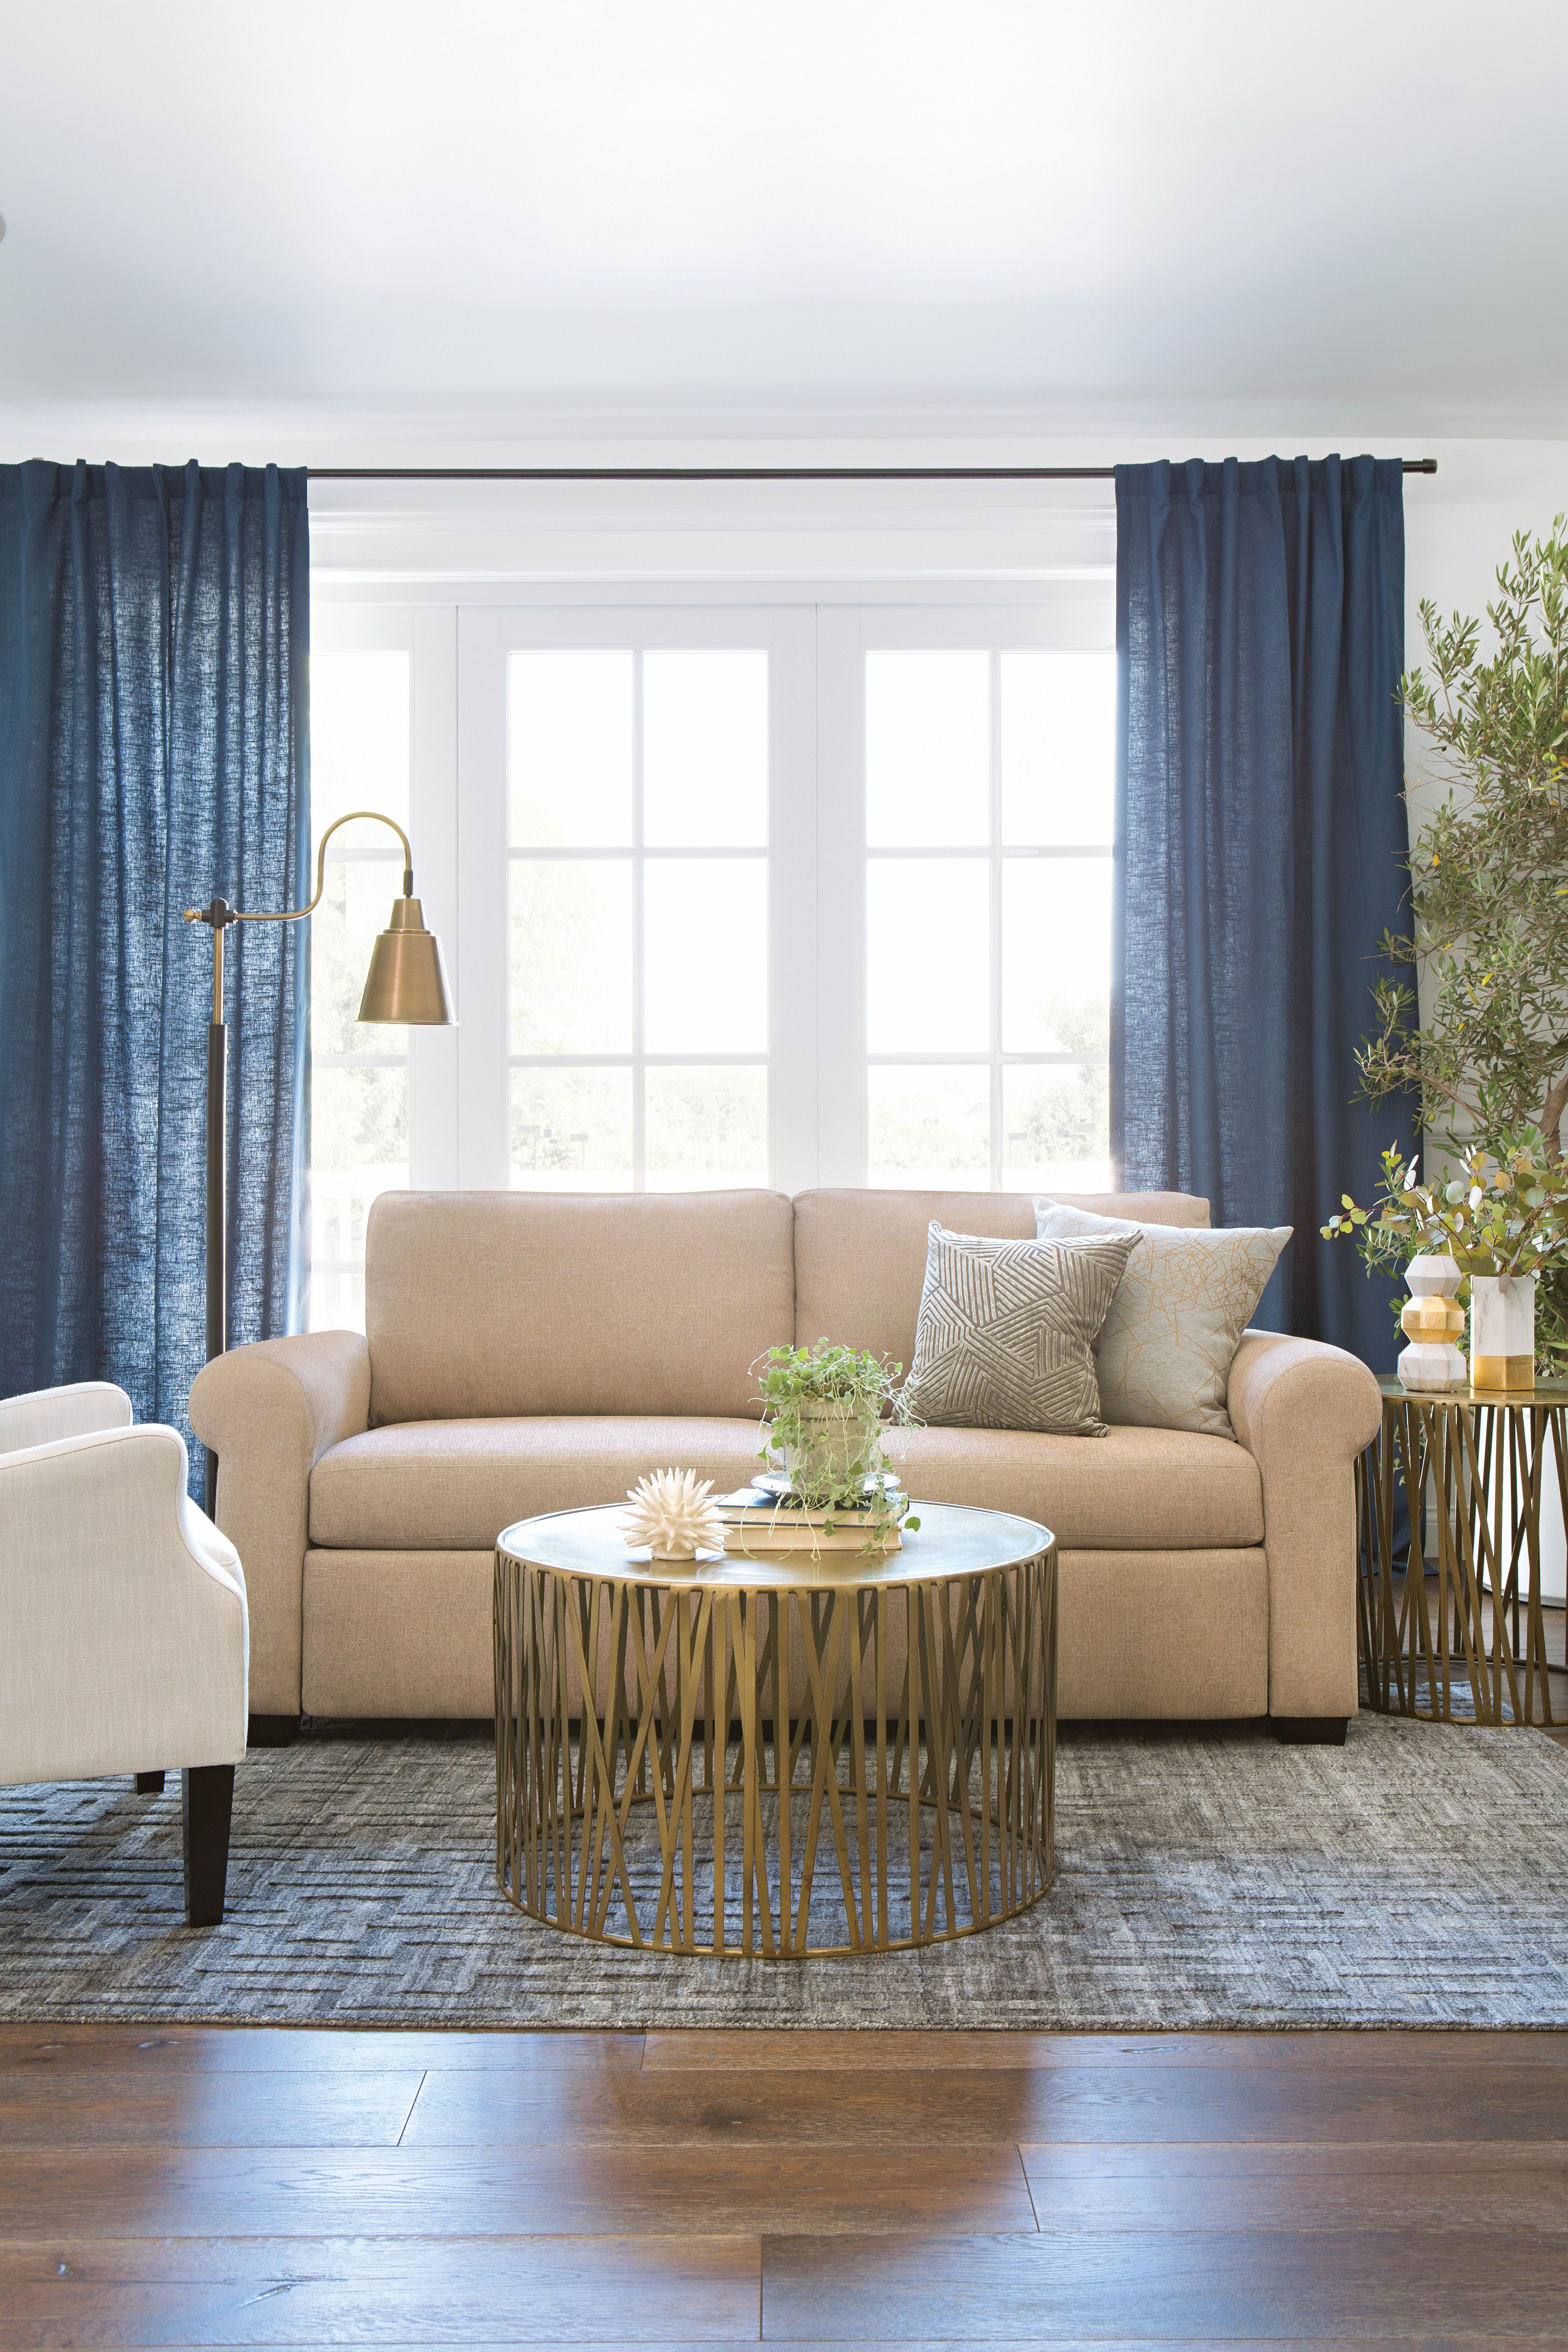 Living Room Timeless Decorating Ideas: Neutral Living Room Sofas. Traditional Style Sofas Bring A